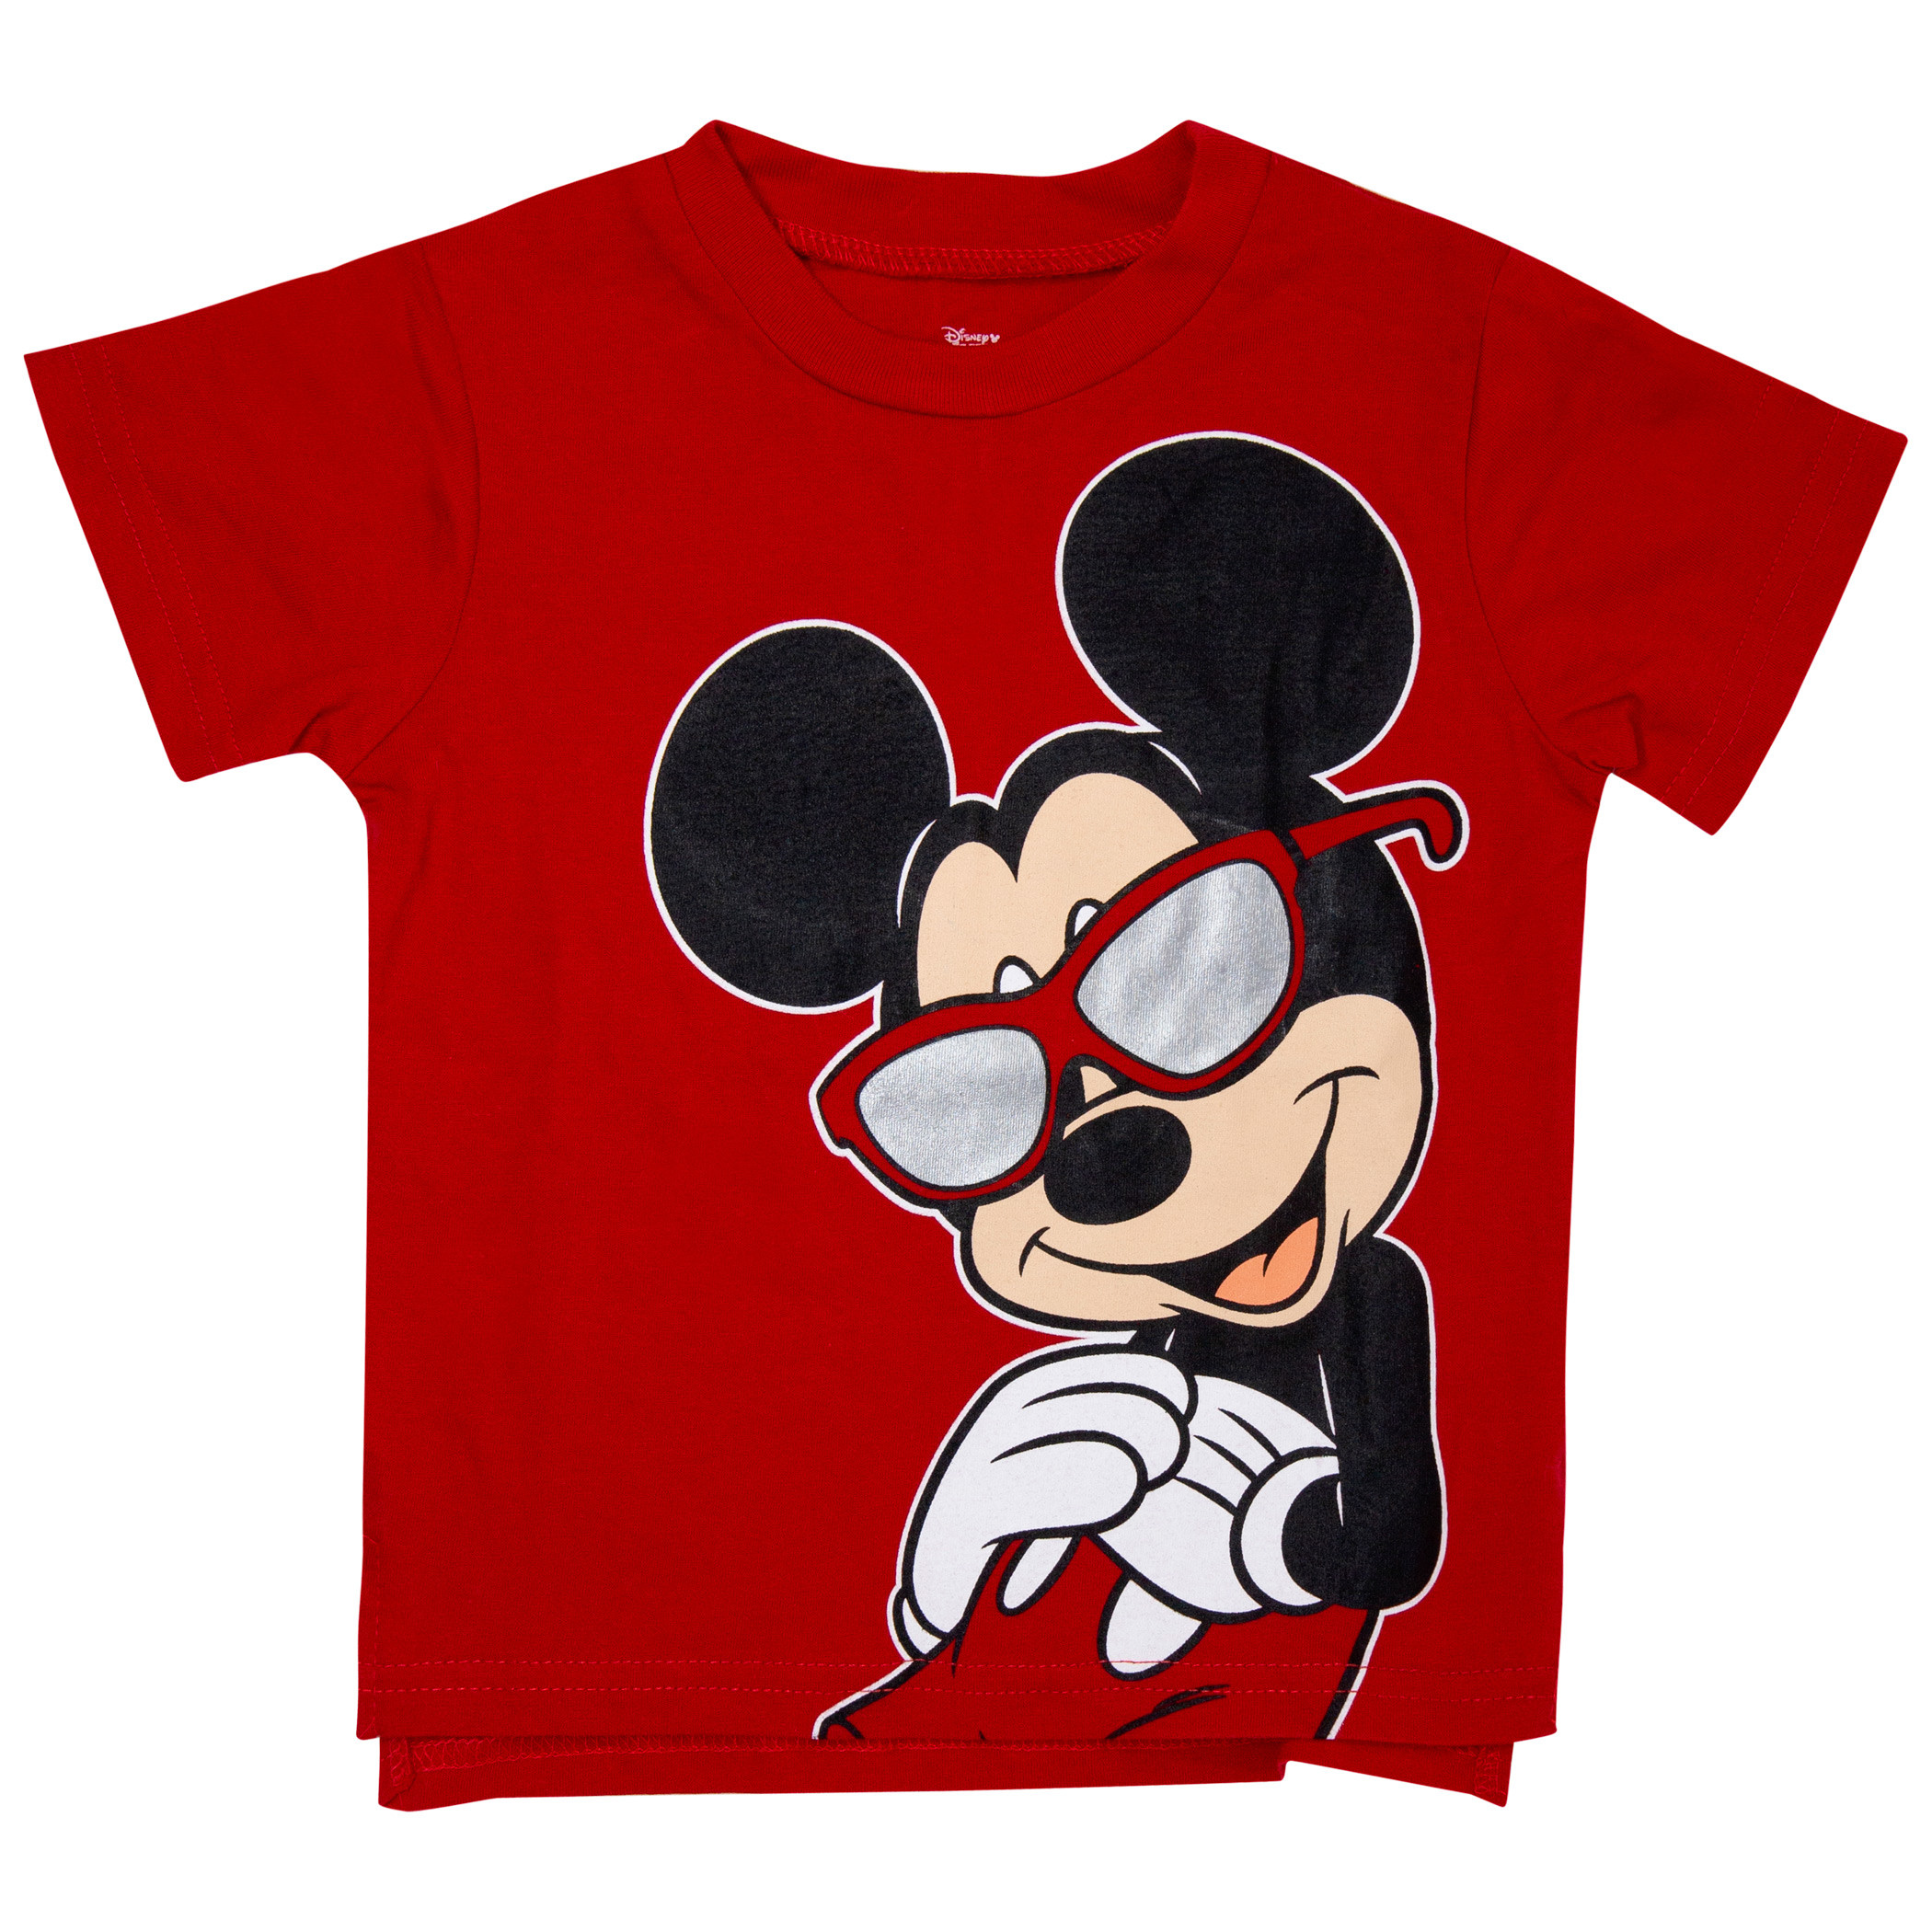 Mickey Mouse Cool Dude Shirt and Shorts Toddler Boys Set